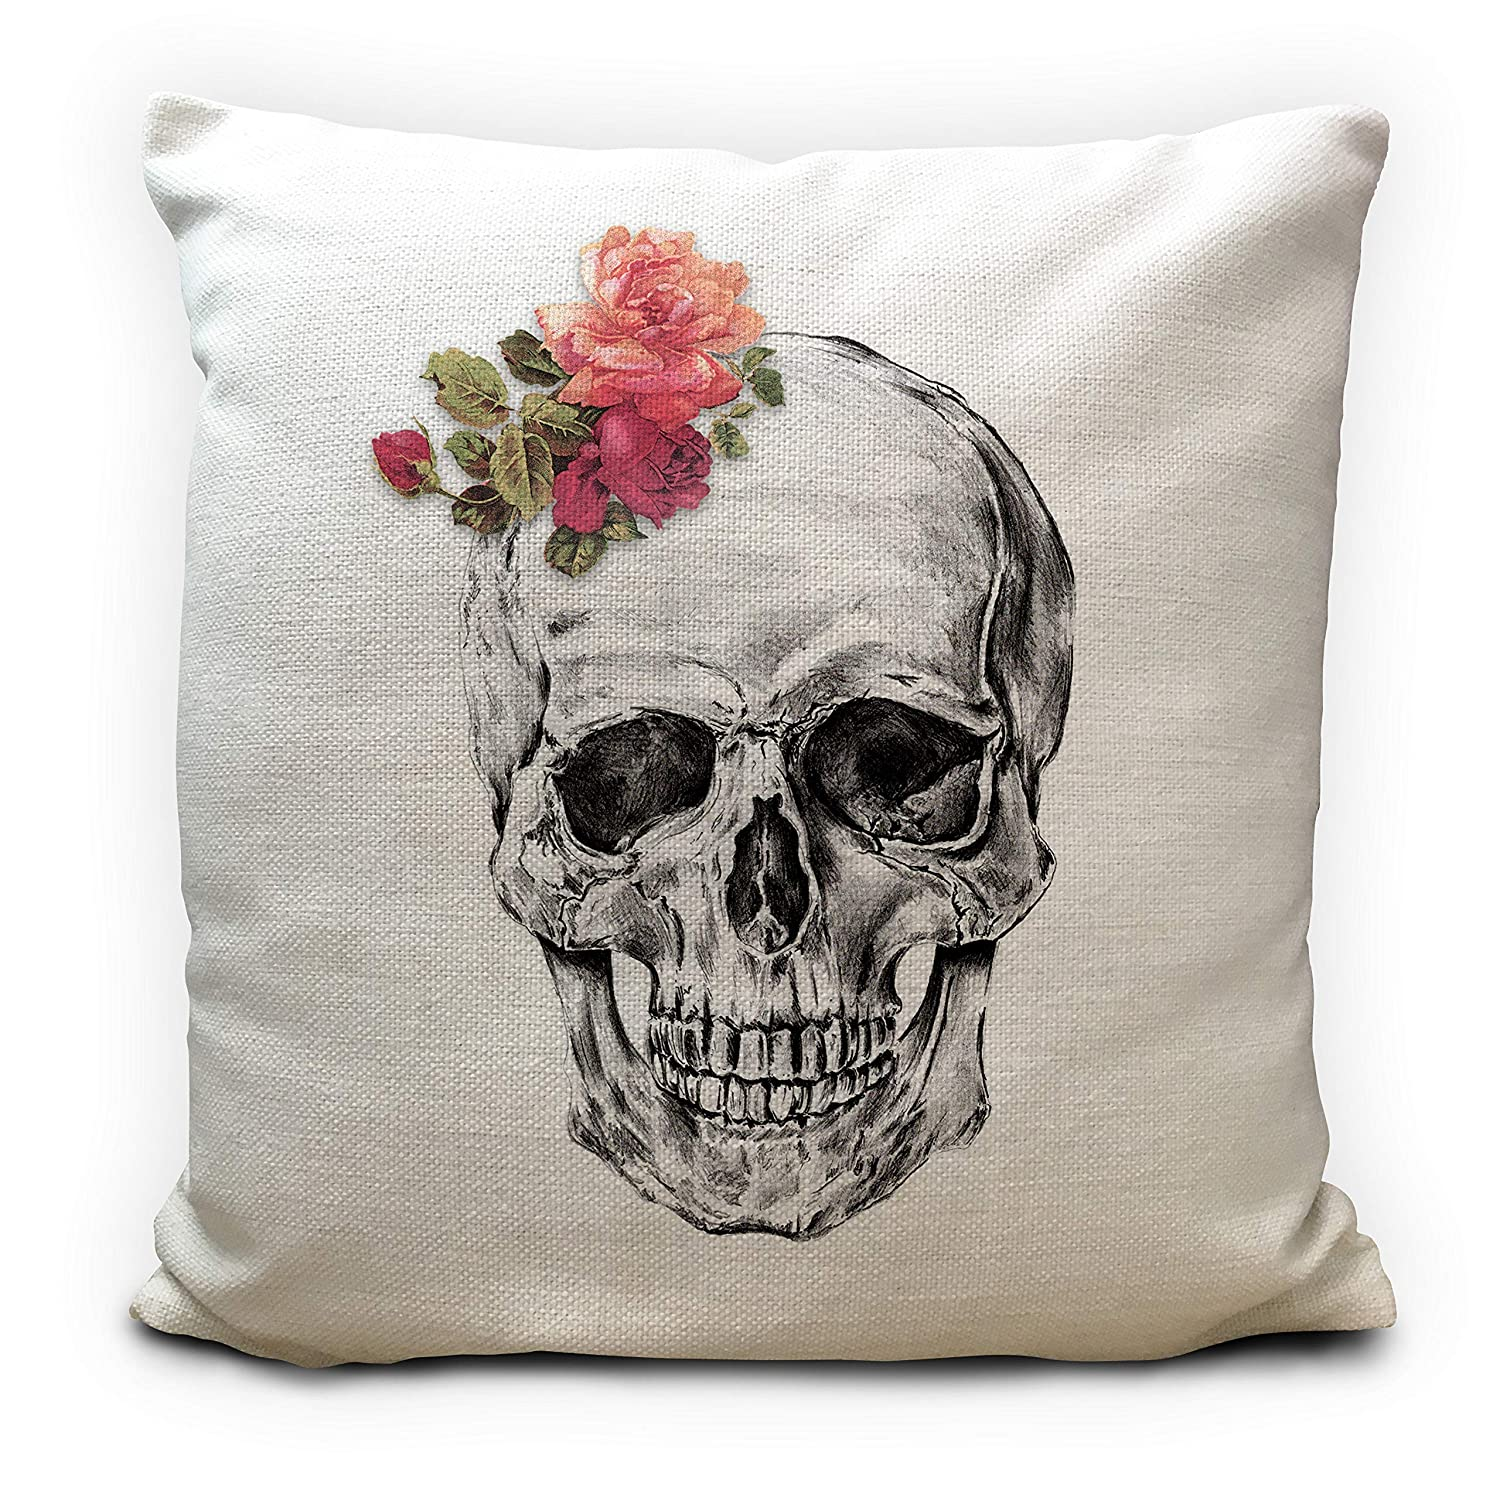 Skull Head Cushion Cover - Gothic Floral Flower Bouquet - Skeleton Pencil Sketch Illustration 16'